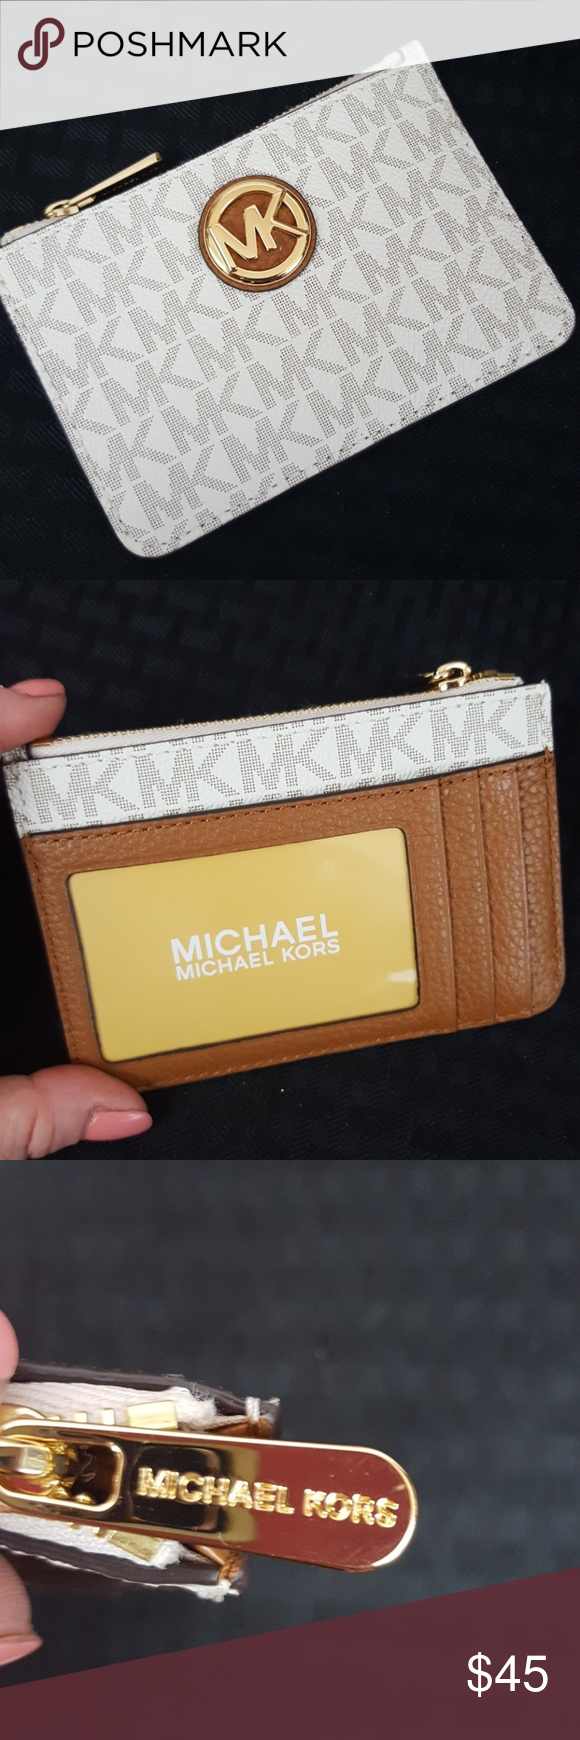 077bb6bf52ad49 MICHAEL KORS WALLET COIN POUCH NWT Leather vanilla and acorn Sm TZ Coin  POUCH with ID